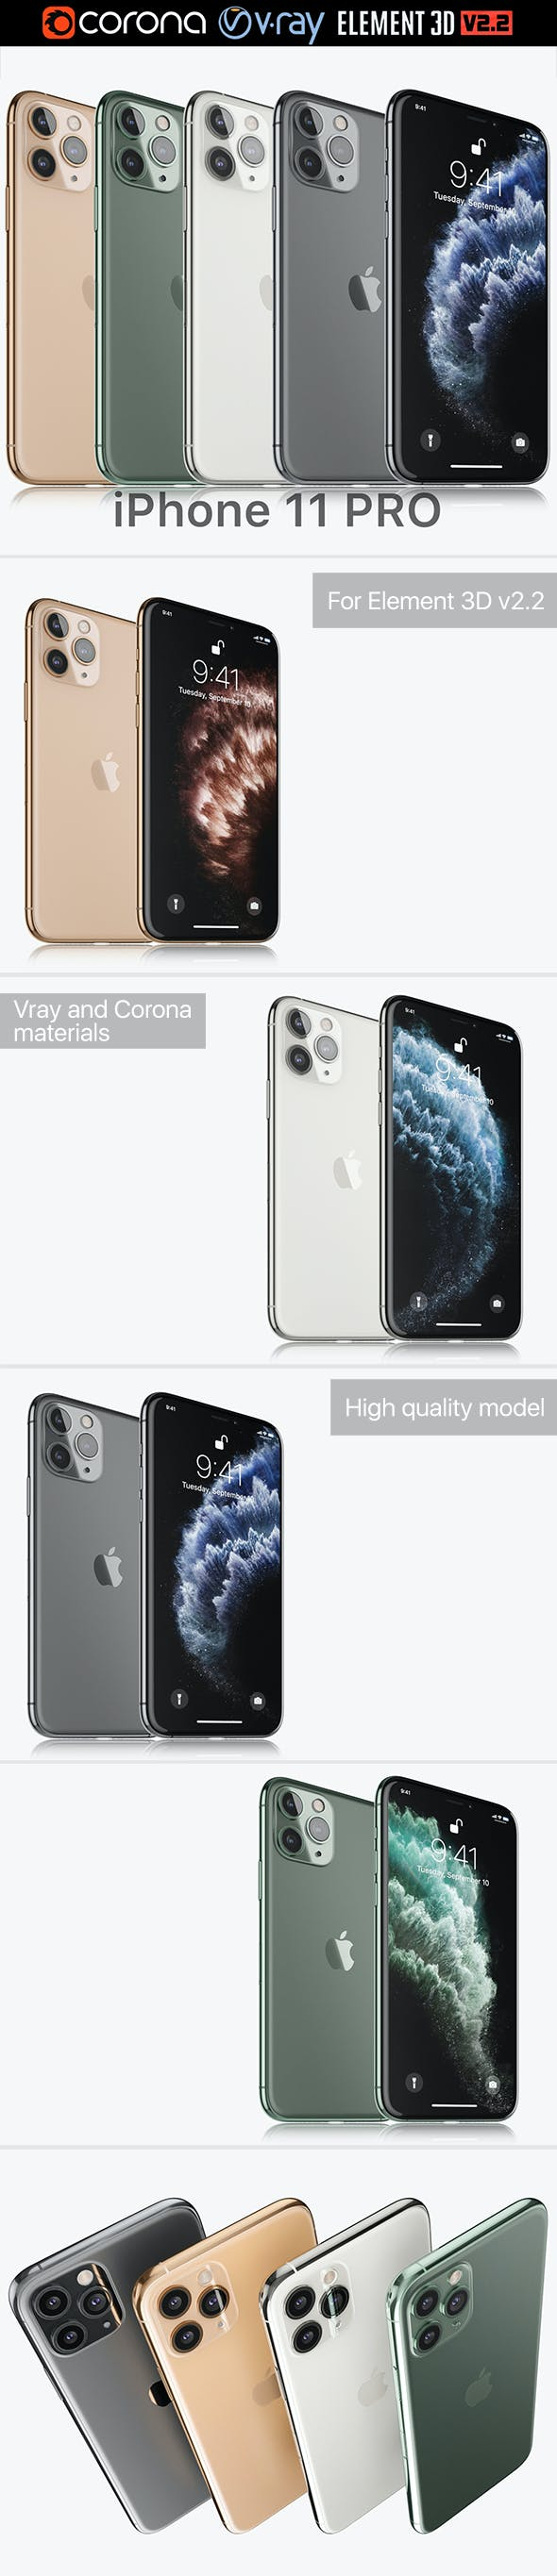 Apple iPhone 11 Pro All colors - 3DOcean Item for Sale